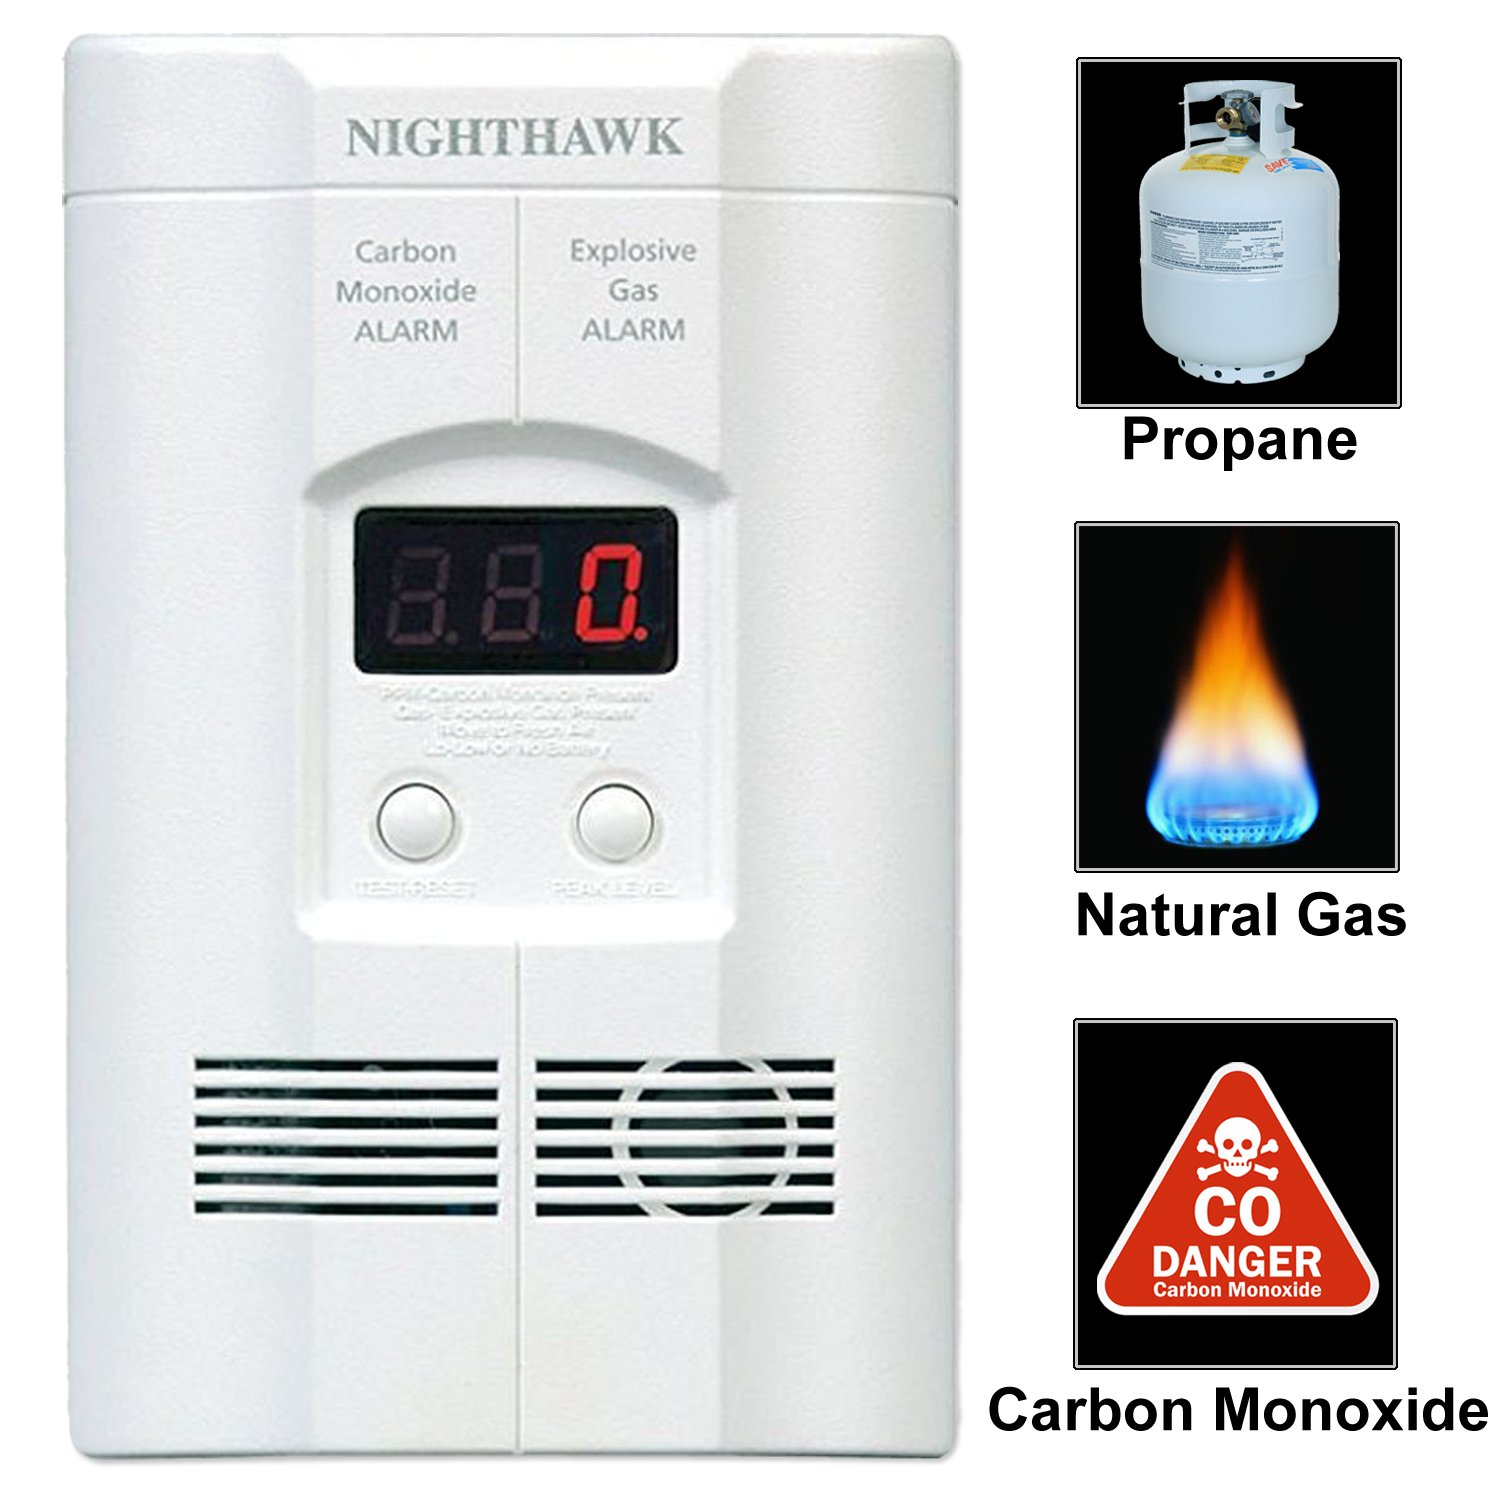 Kidde AC Plug-in Carbon Monoxide and Explosive Gas Detector Alarm | Nighthawk Sensor Technology | Model # KN-COEG-3 by Kidde